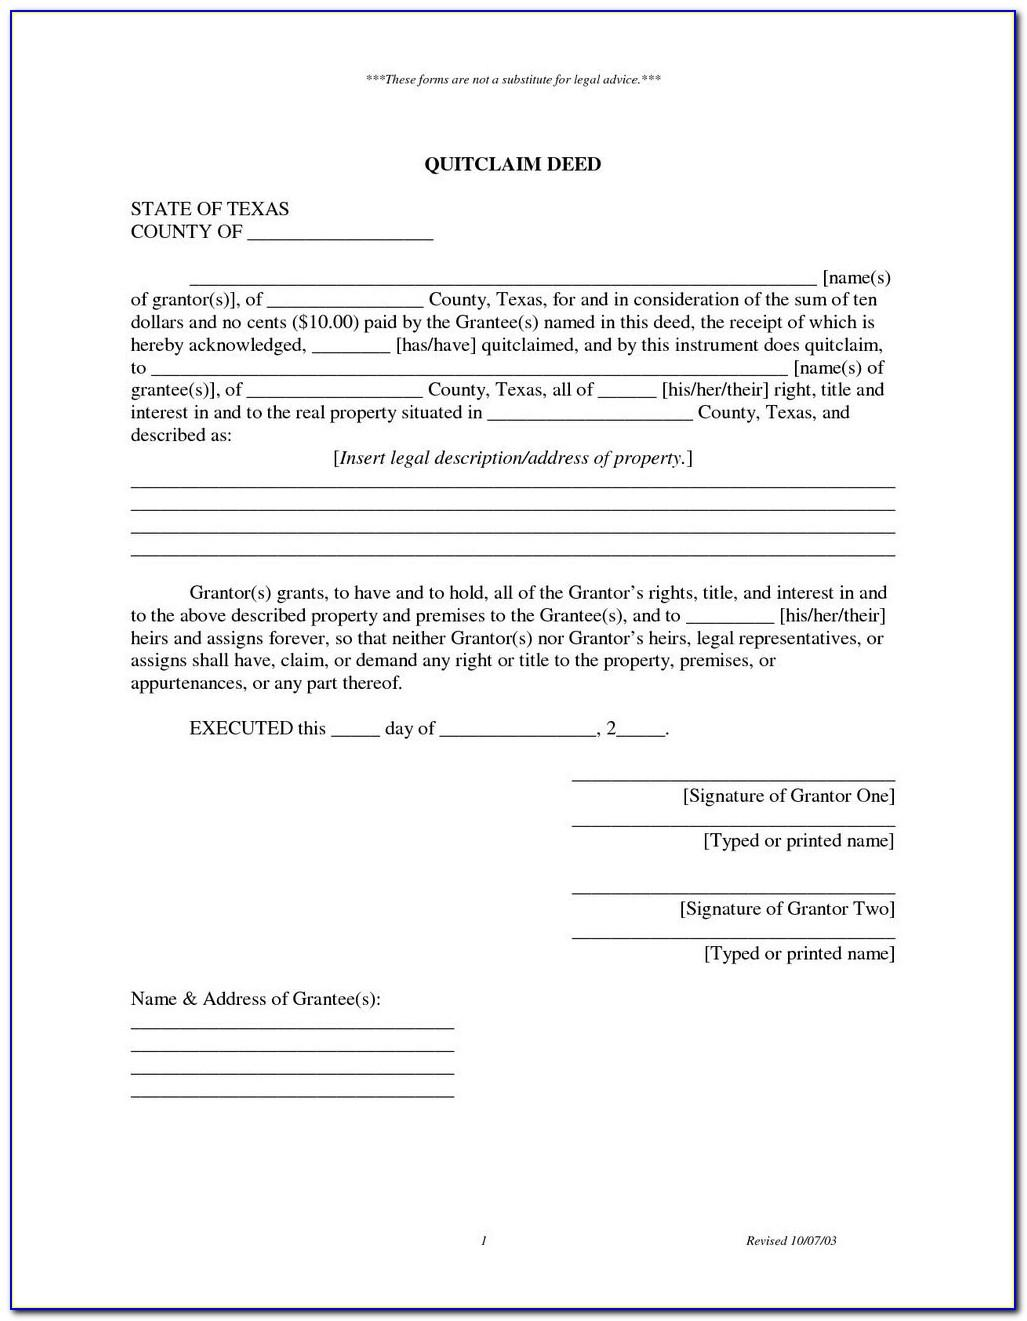 Quit Claim Deed Form Collin County Texas